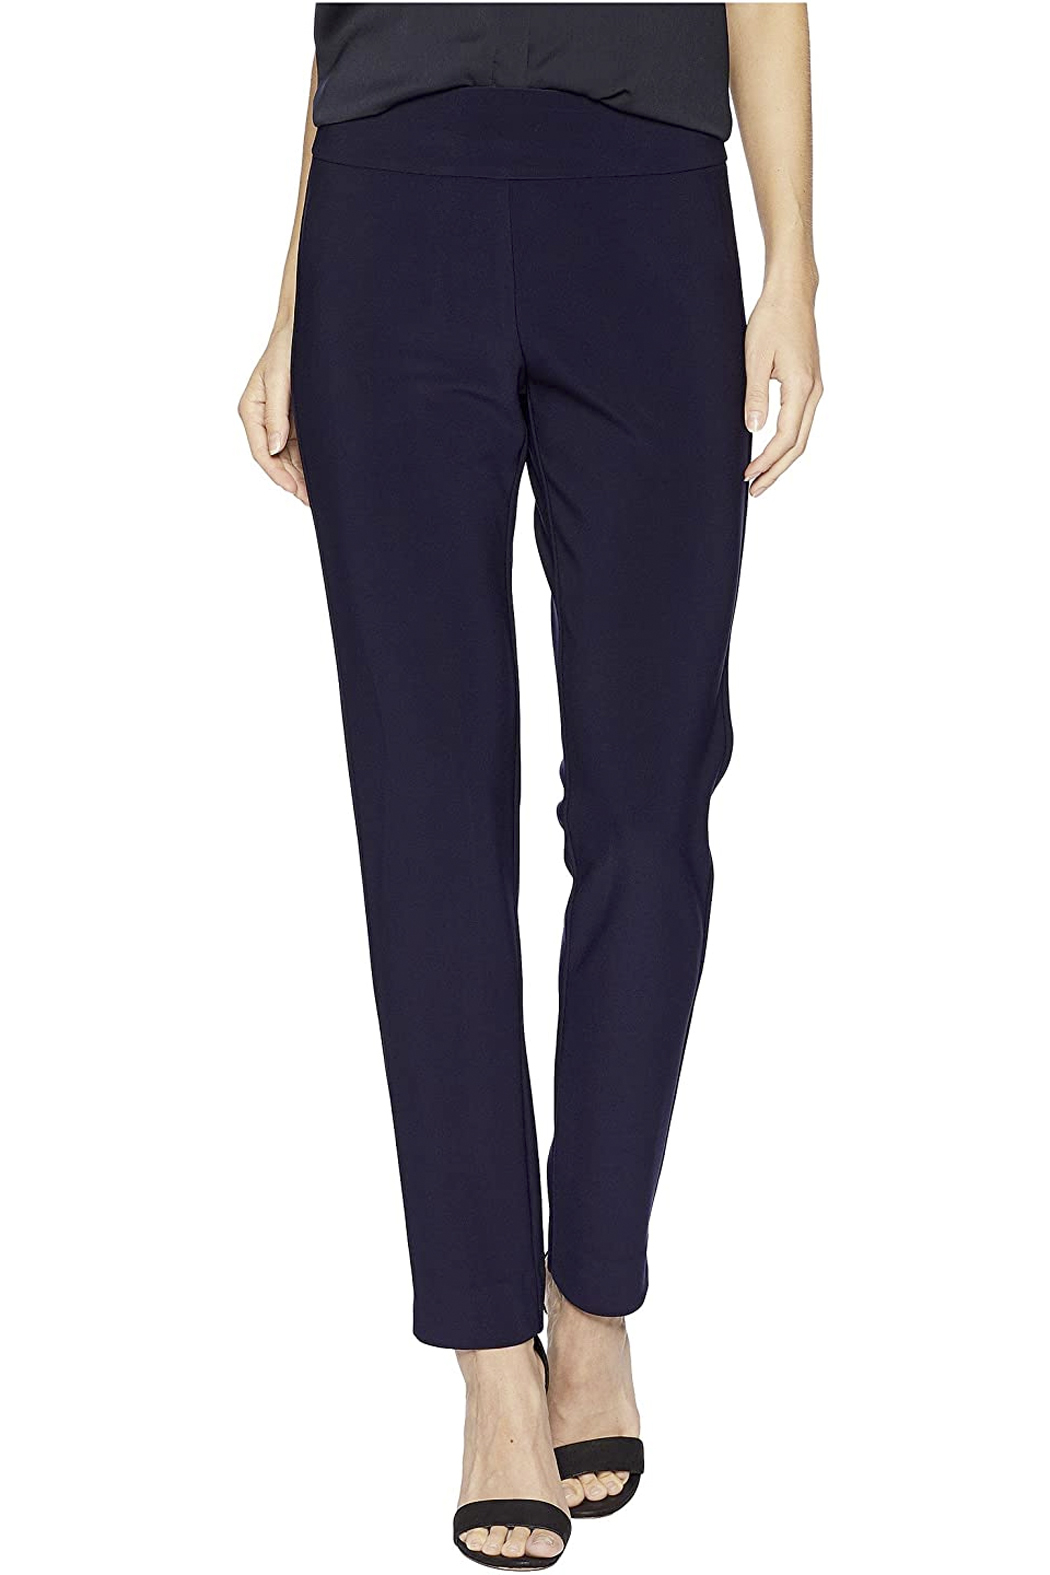 Krazy Larry P-21 Microfiber Pant - Front Cropped Image